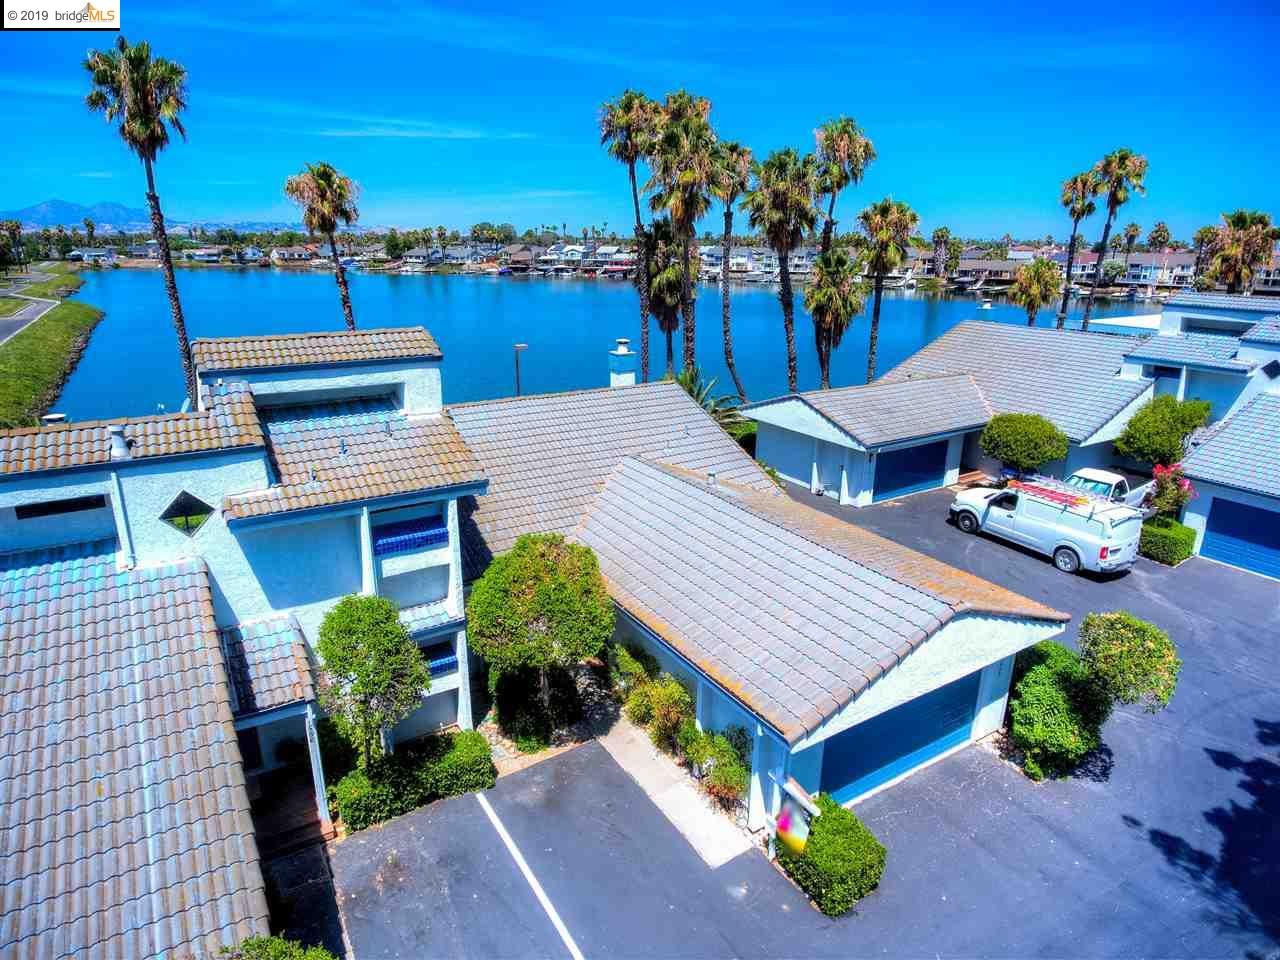 1550 Trawler St, DISCOVERY BAY, CA 94505